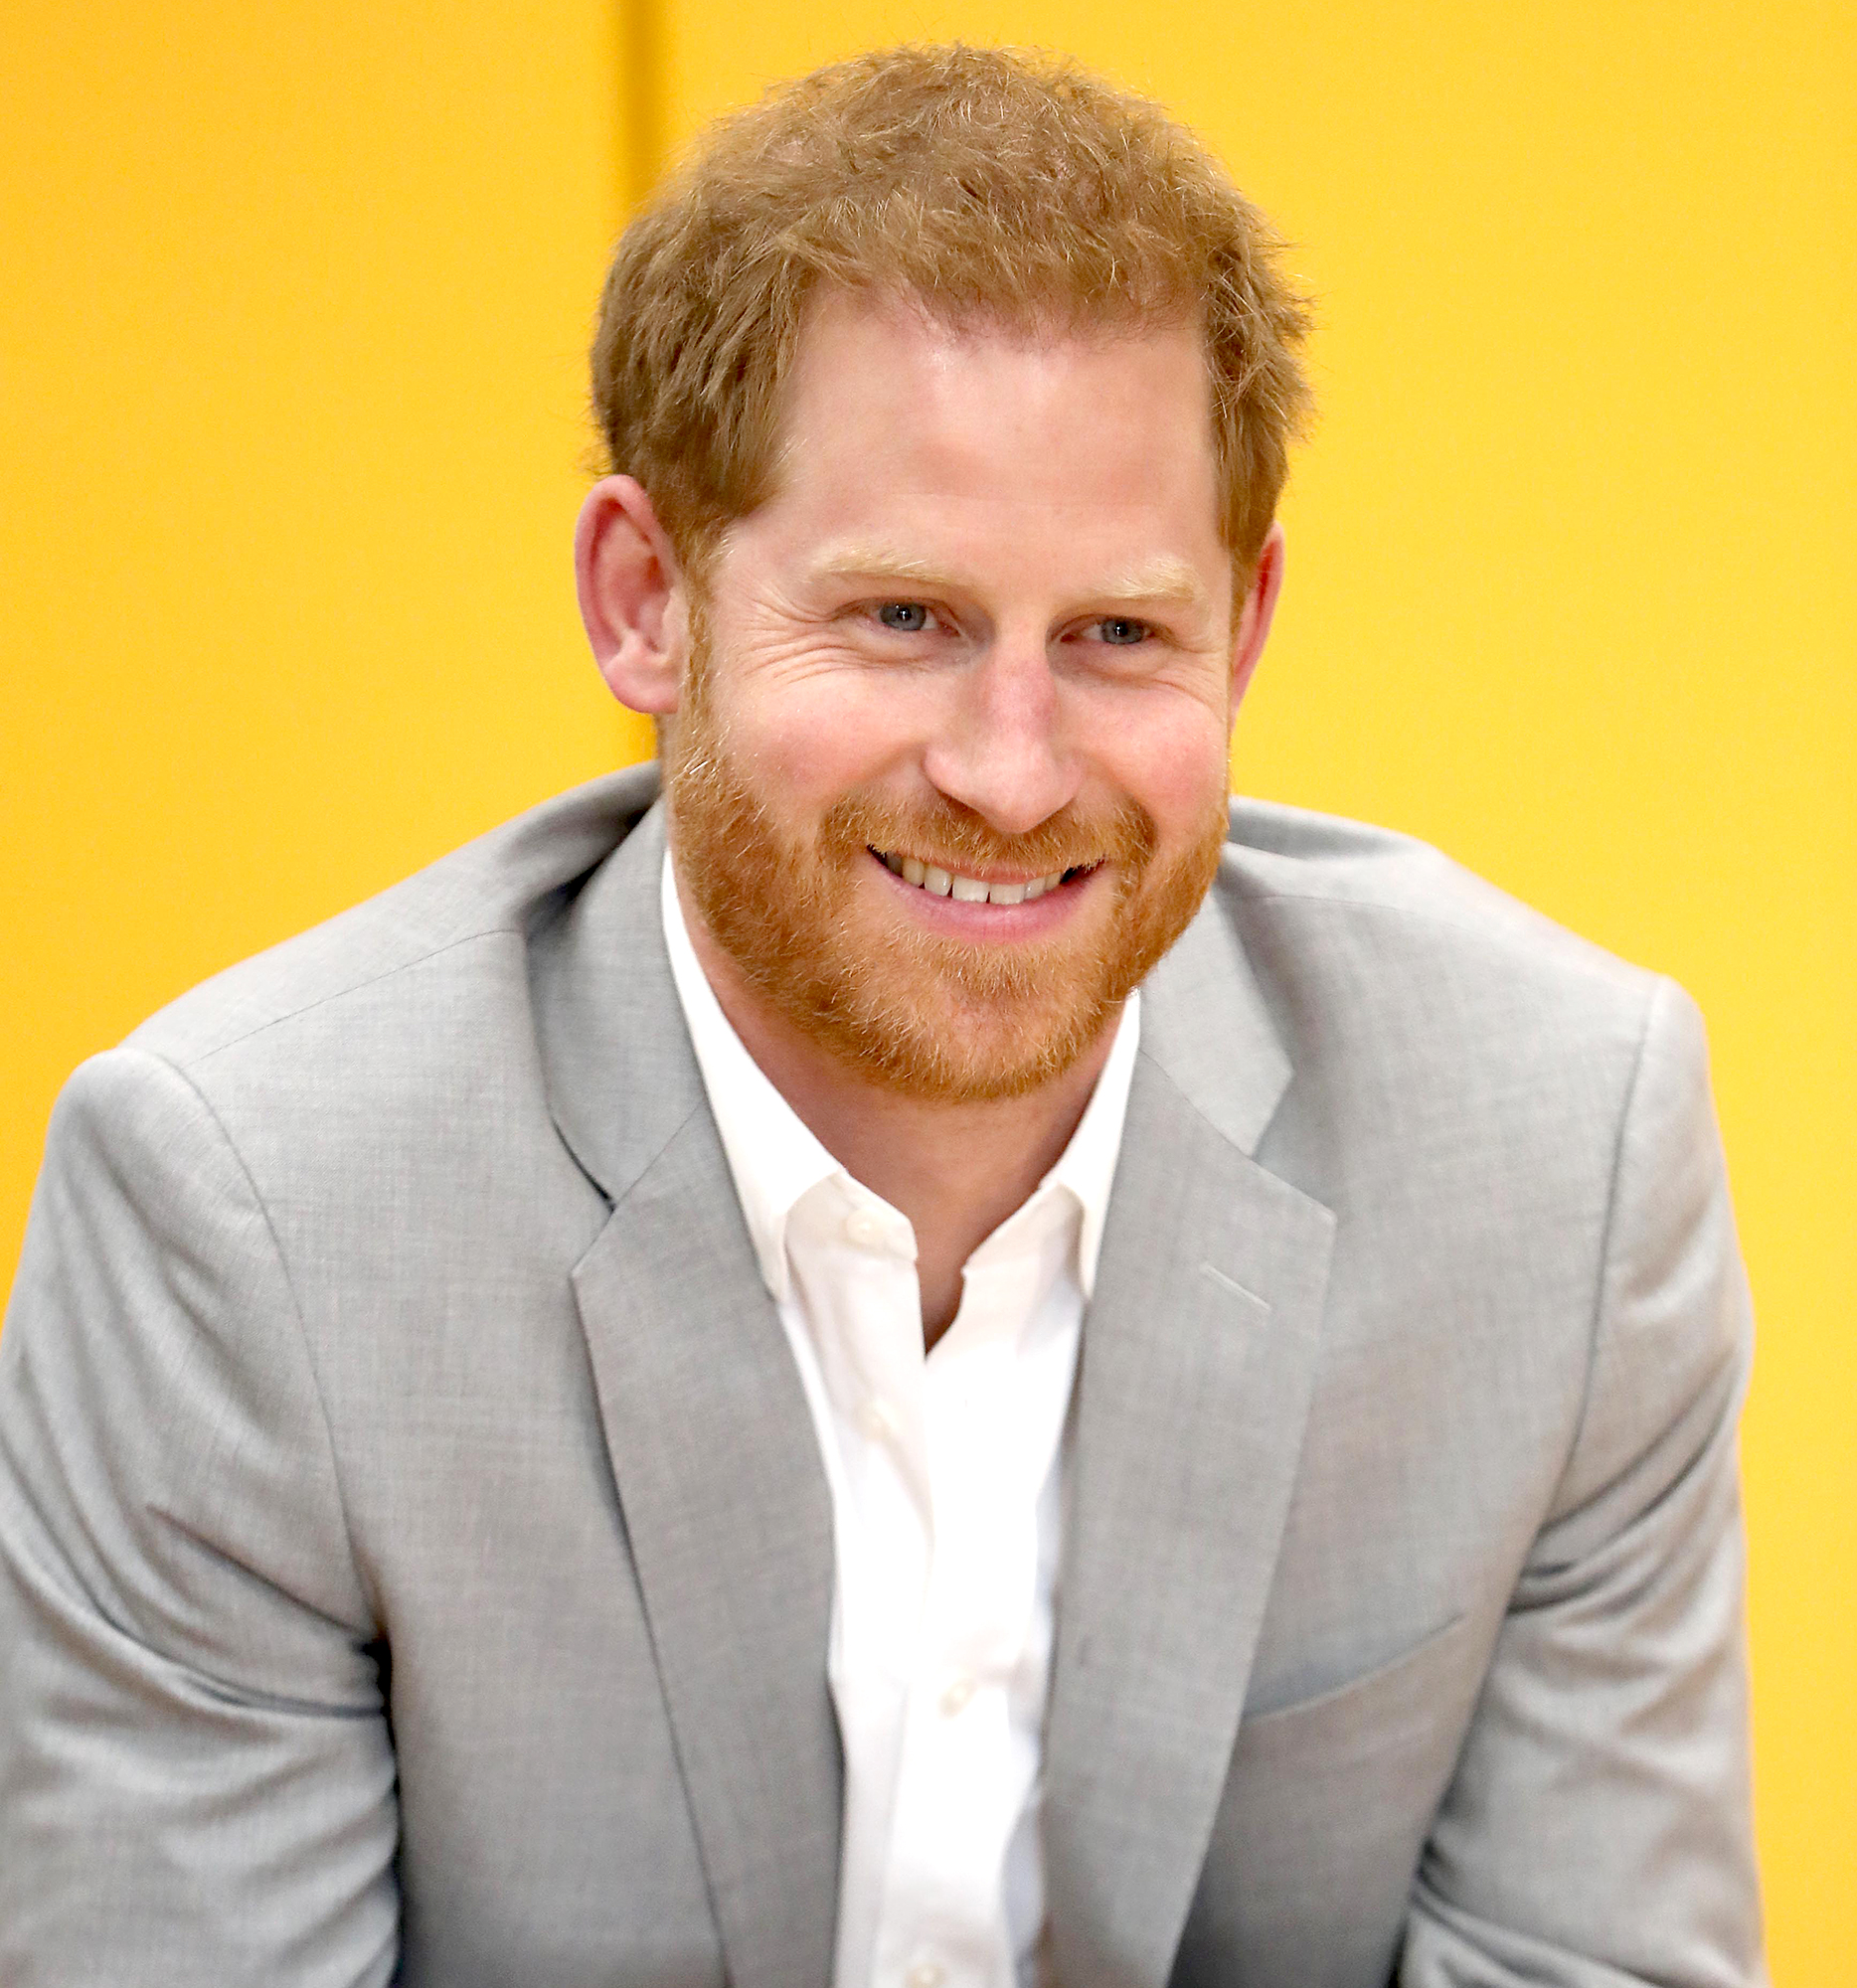 Prince Harry Cancels Trip Amid Rumors Royal Baby Arrived